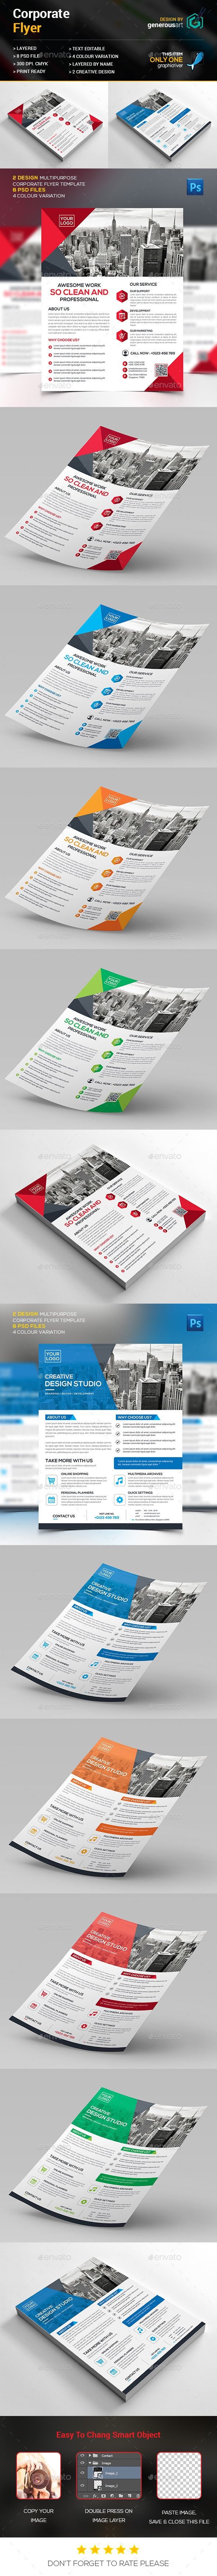 133 best business cards images on Pinterest